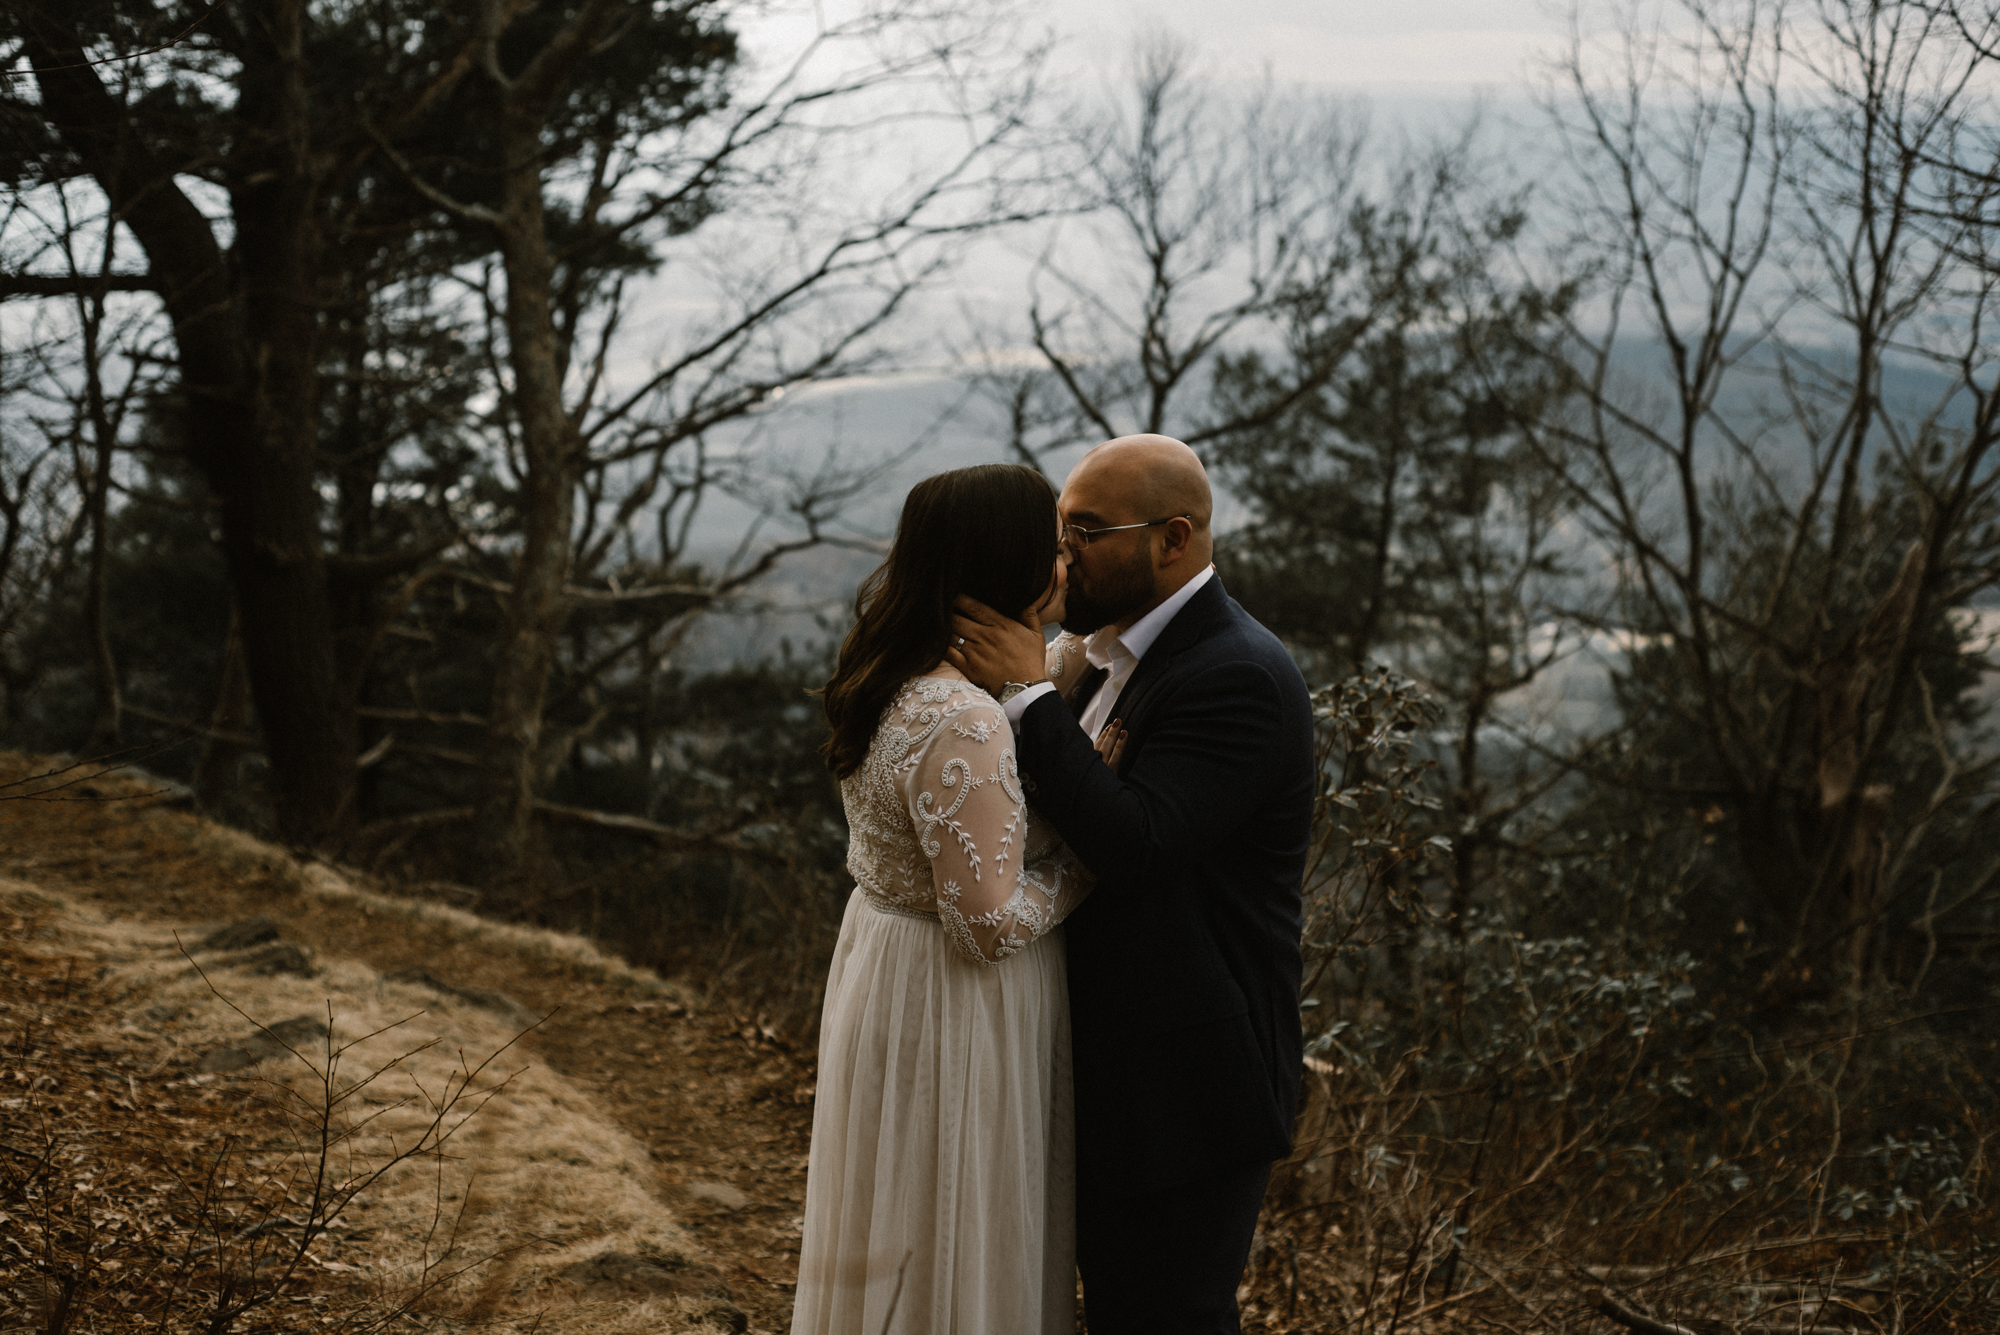 Emma and Jeddah - Intimate Luray Wedding - Shenandoah National Park Wedding - Adventure Elopement in Virginia - Shenandoah National Park Elopement_69.jpg